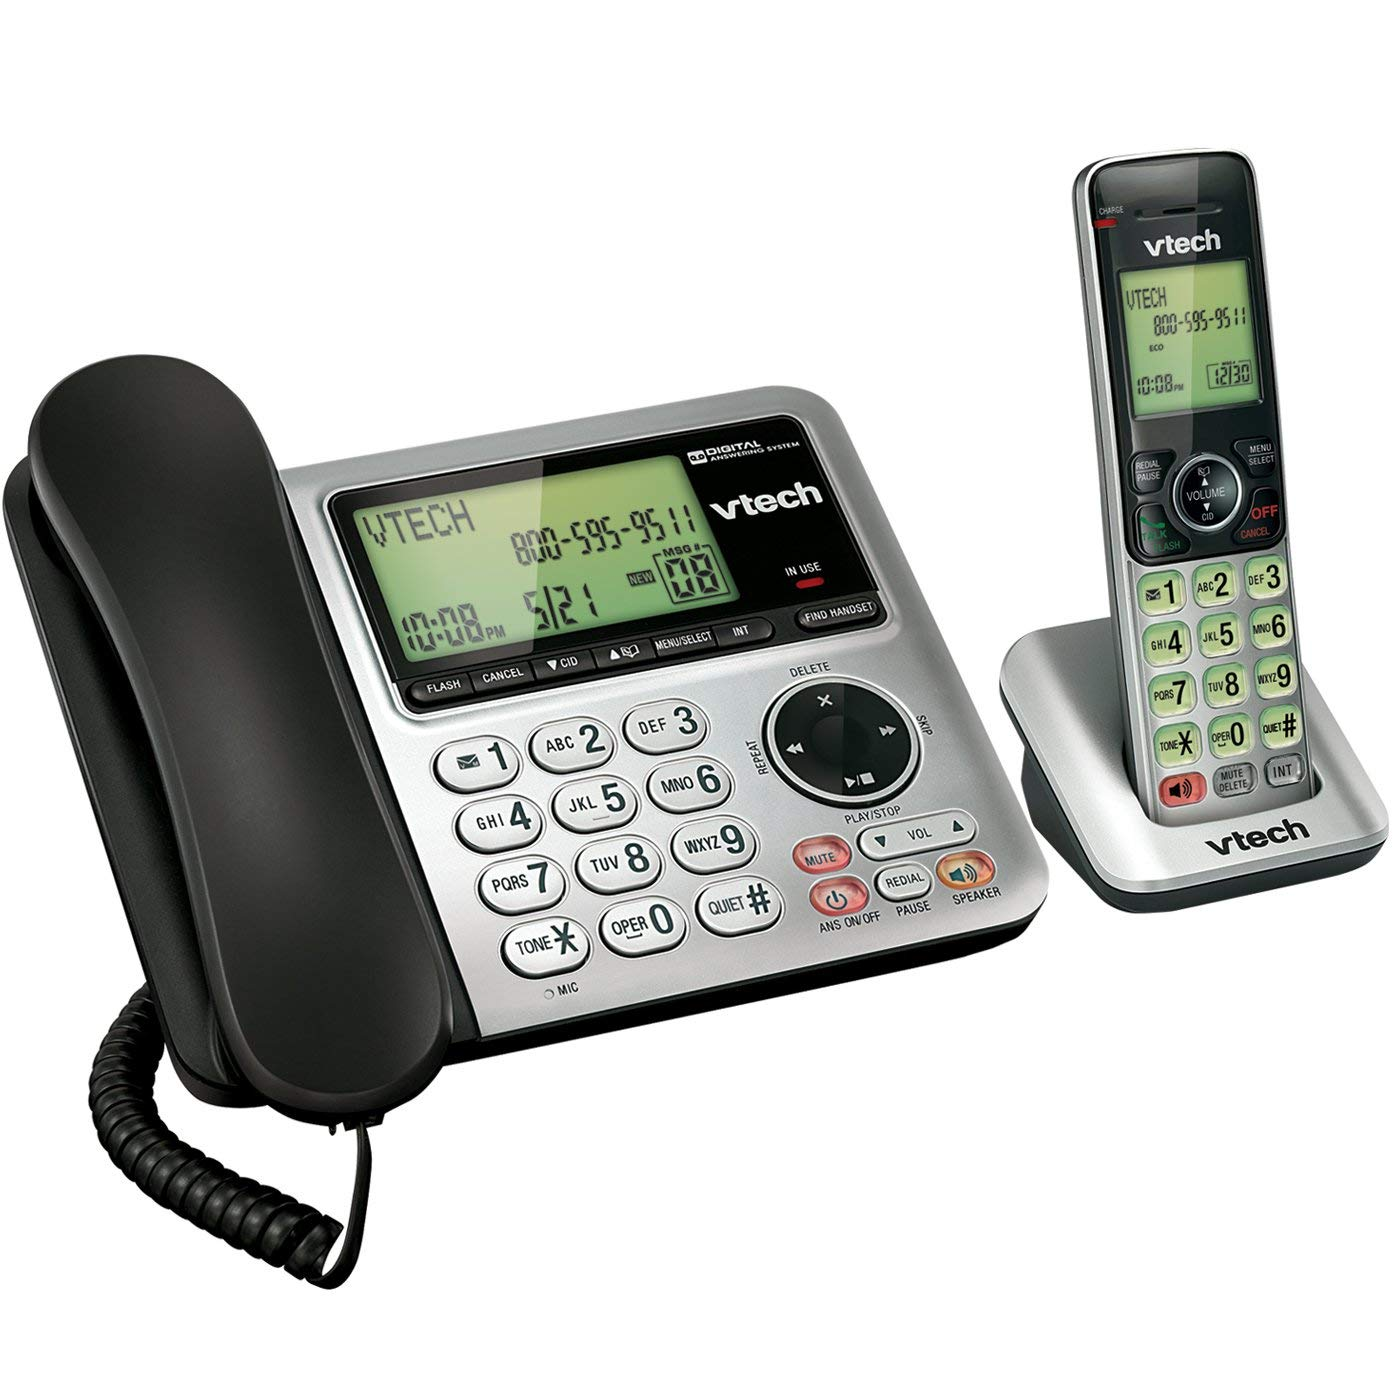 VTech CS6649 Expandable CordedCordless Phone System with Answering System